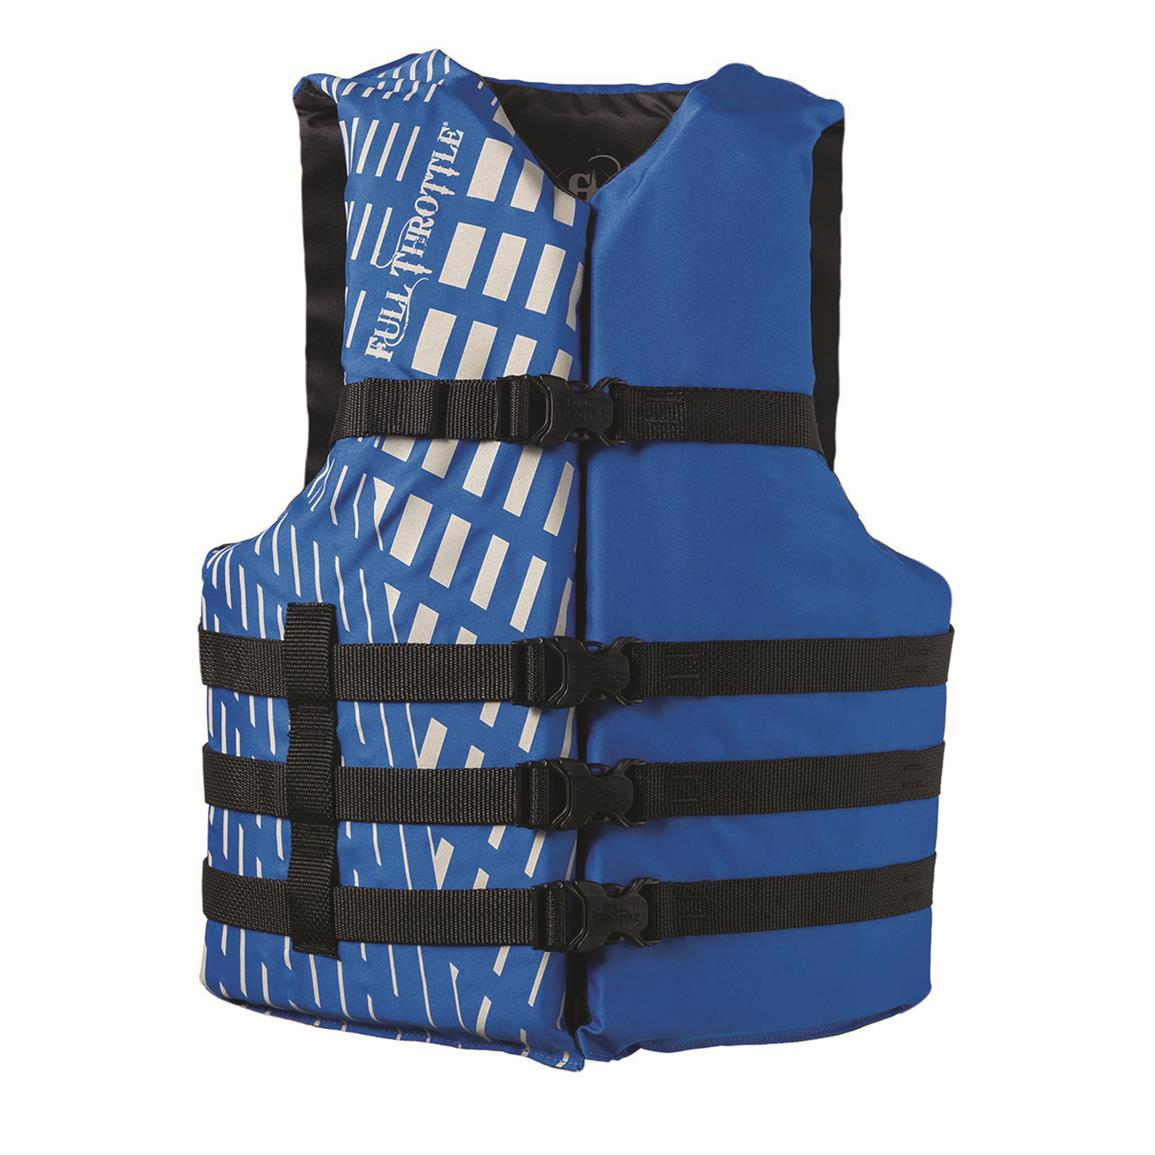 Full Throttle Adult Universal and Oversized Ski Vest, Blue